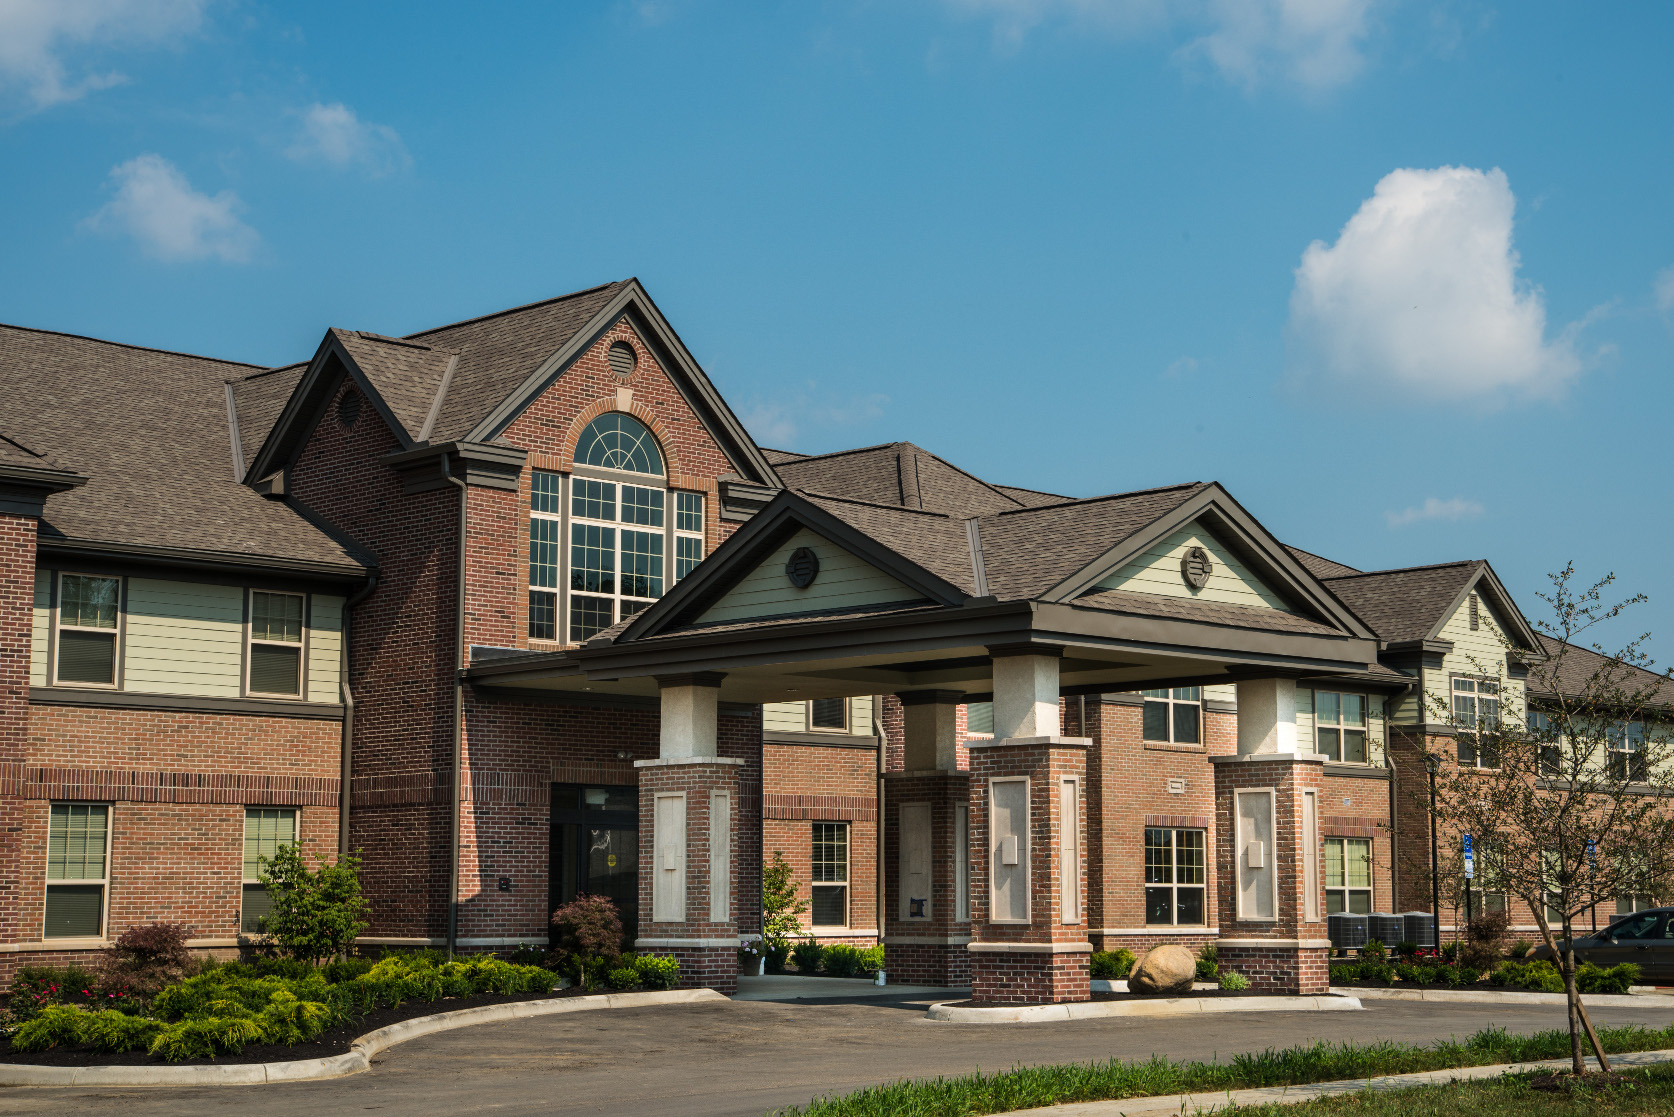 JPMorgan Chase has provided $41.4 million in construction loans for eight Homeport communities including Eastway Village in Whitehall, above.